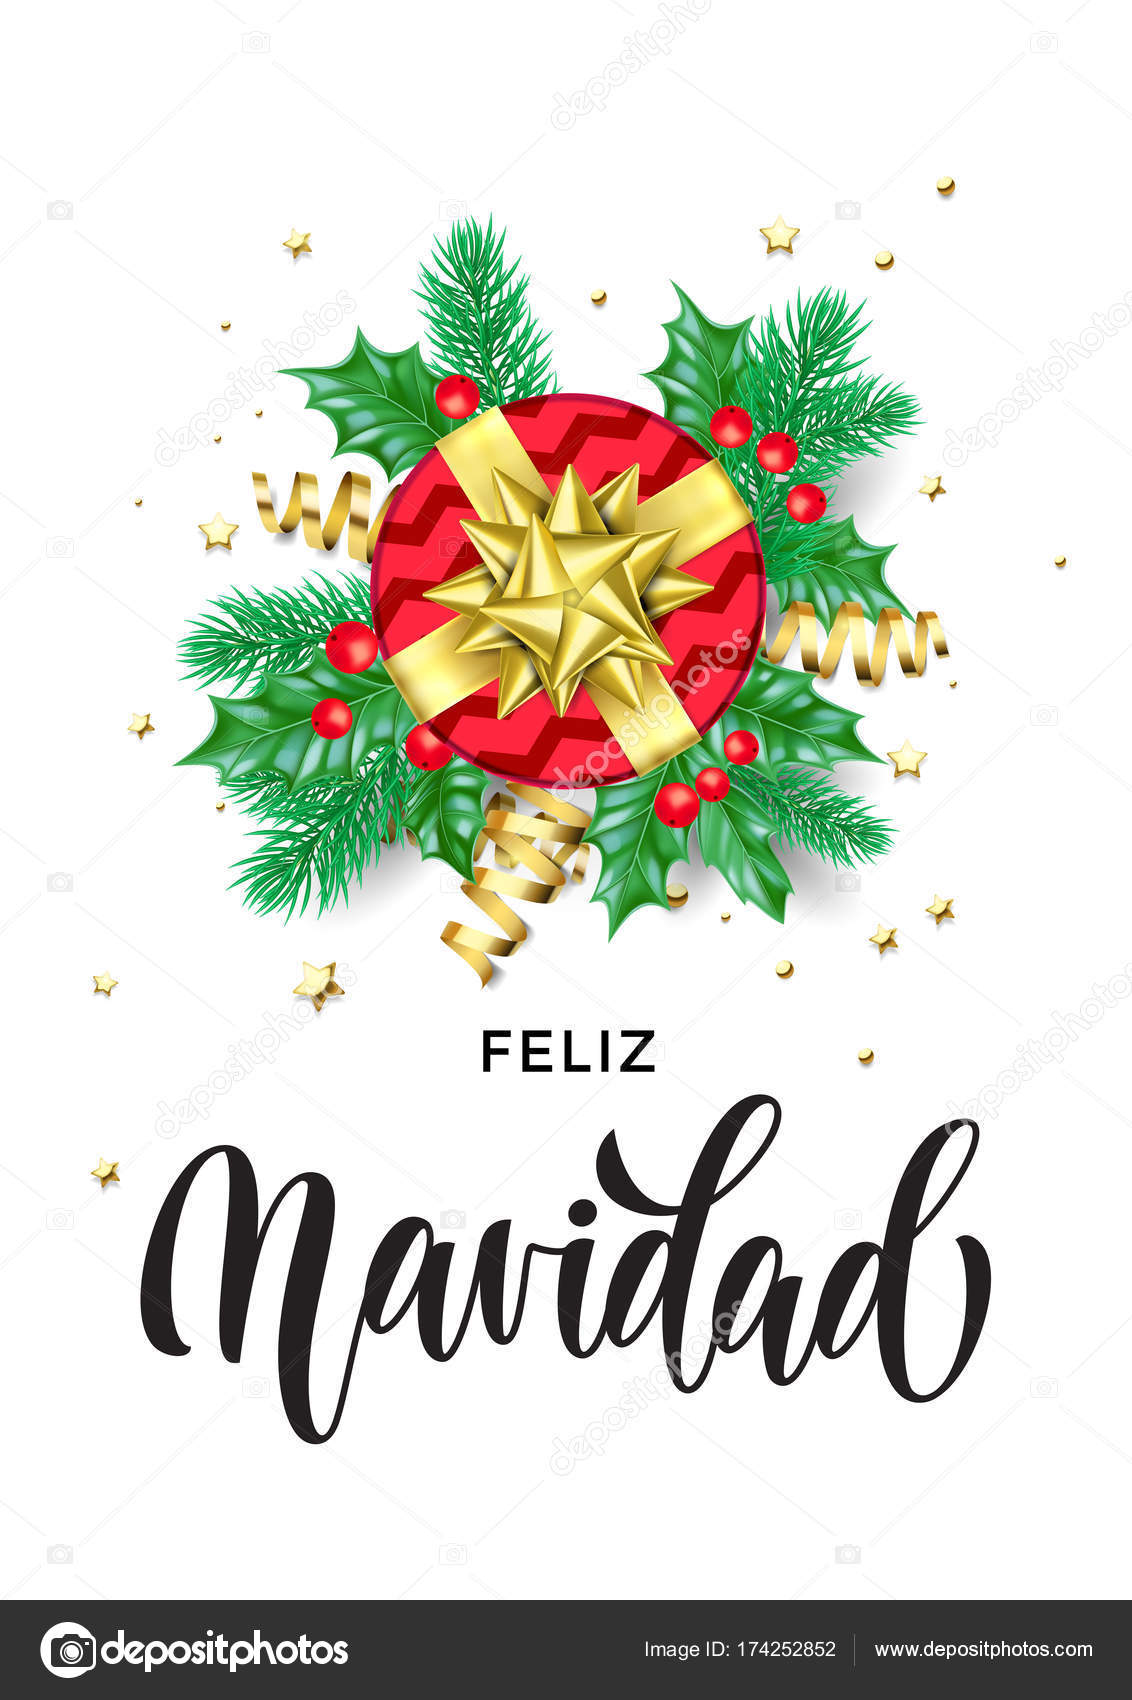 Christmas Spanish.Merry Christmas Spanish Feliz Navidad Holiday Hand Drawn